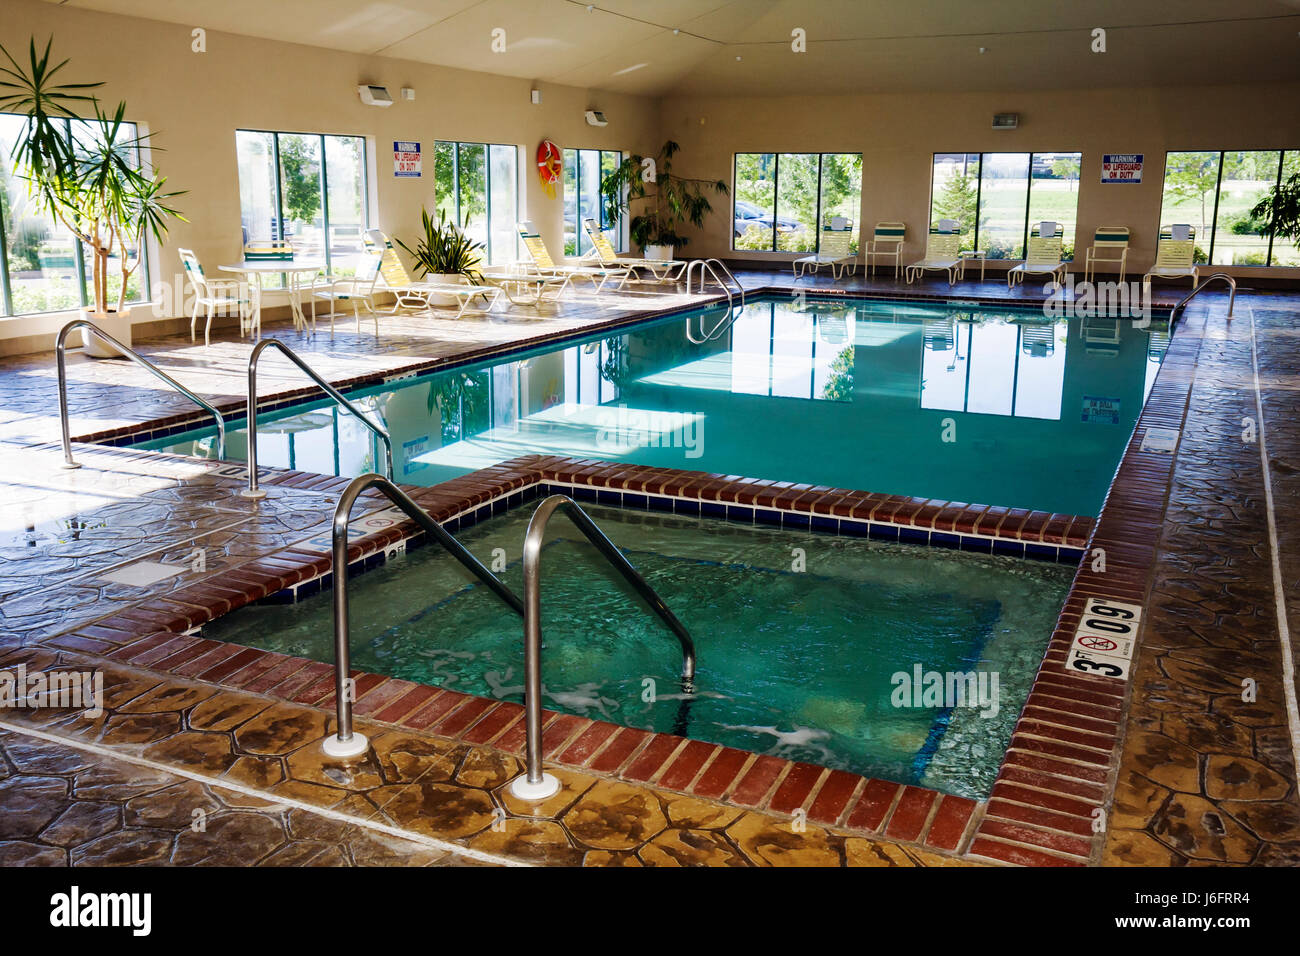 Wisconsin Kenosha Holiday Inn Express Indoor Swimming Pool Jacuzzi Stock Photo Royalty Free